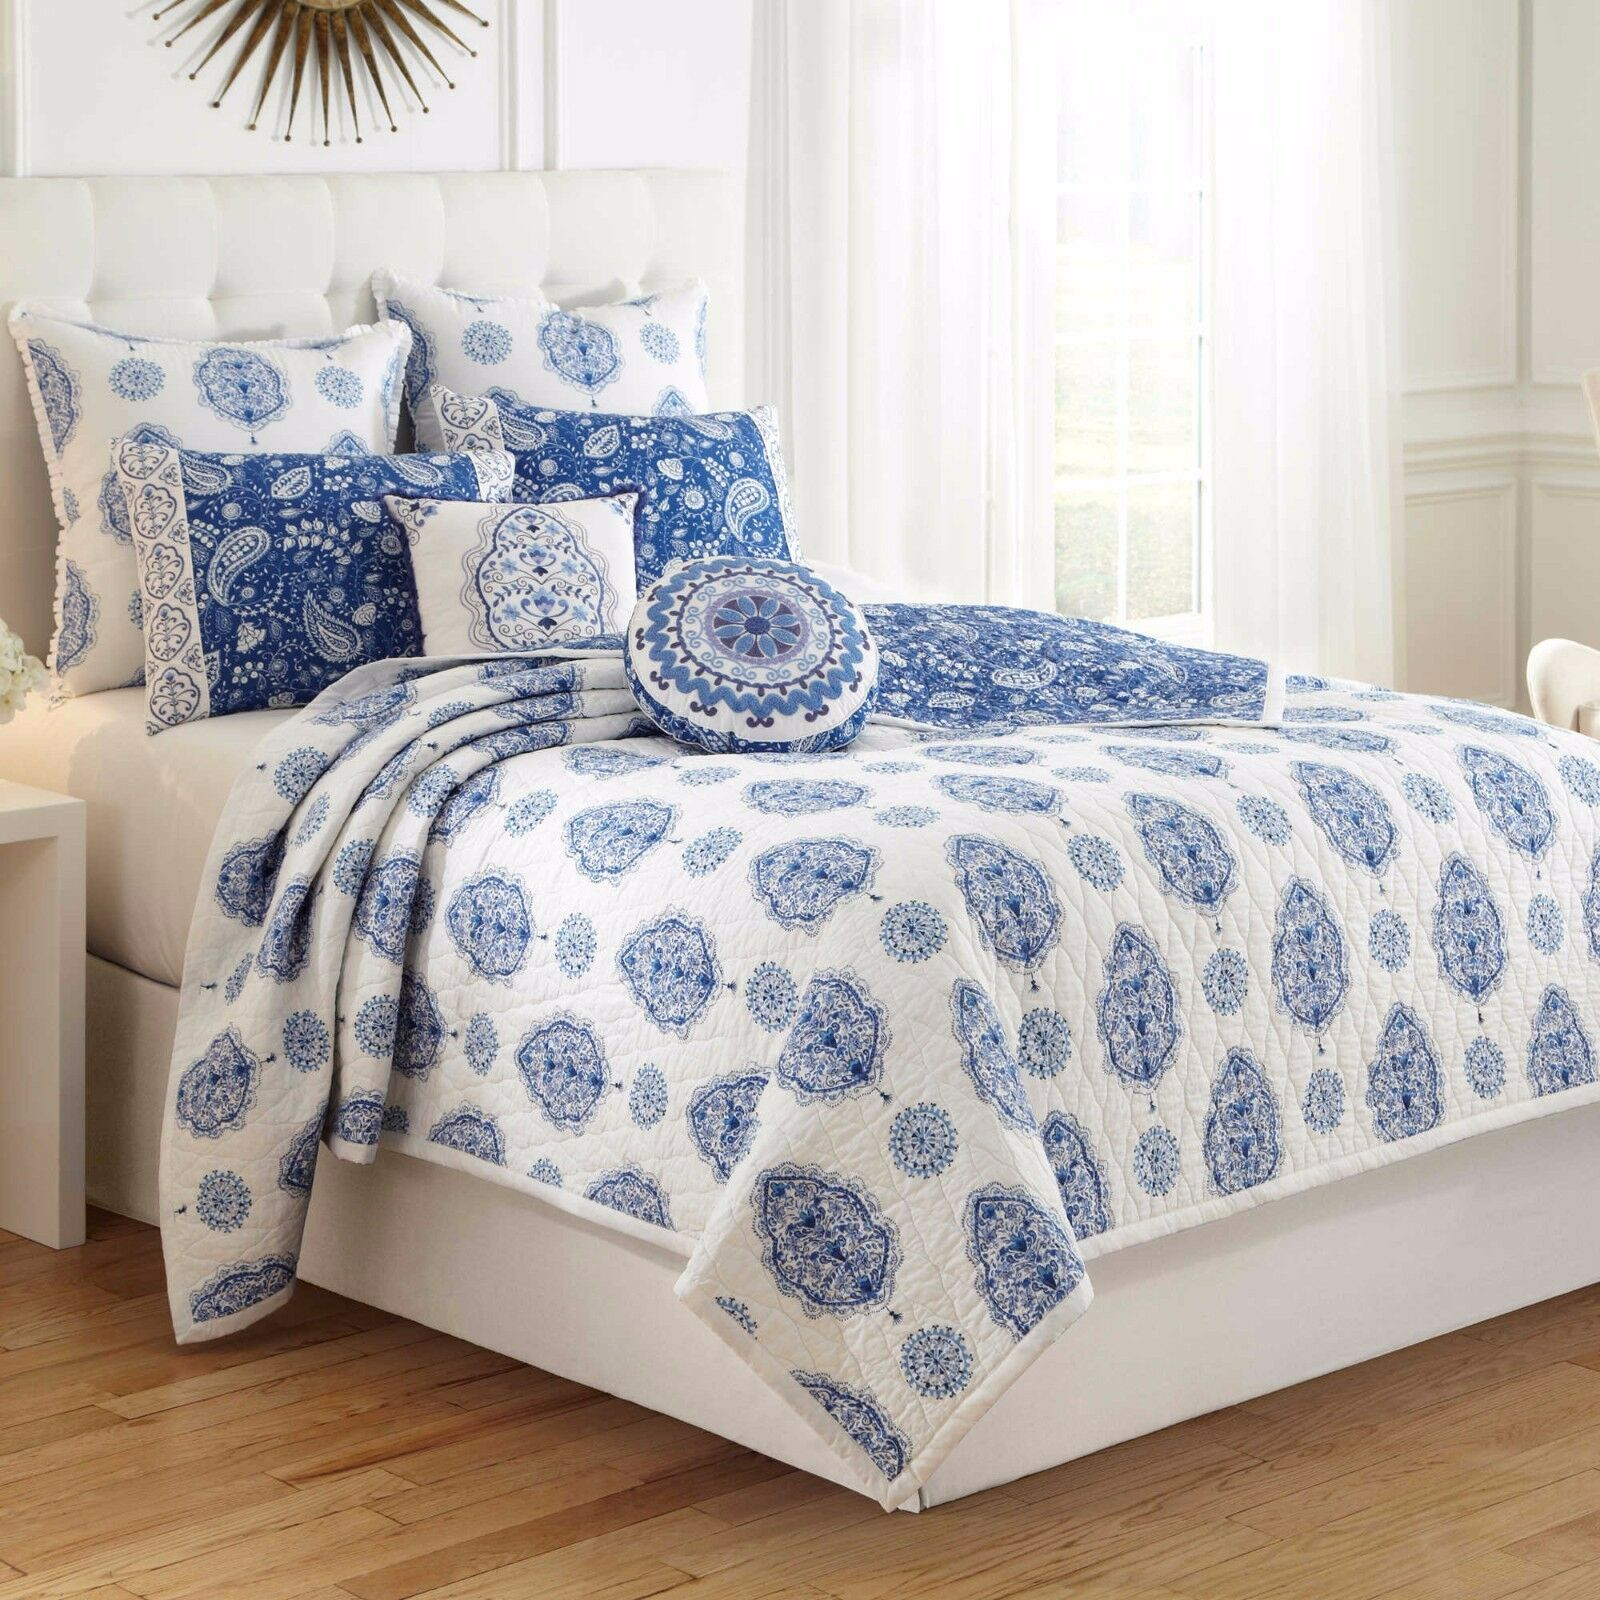 DENA HOME SOLANGE 5PC SET, 1 FULL QUEEN QUILT COVER  2 STANDARD 2 EURO SHAMS